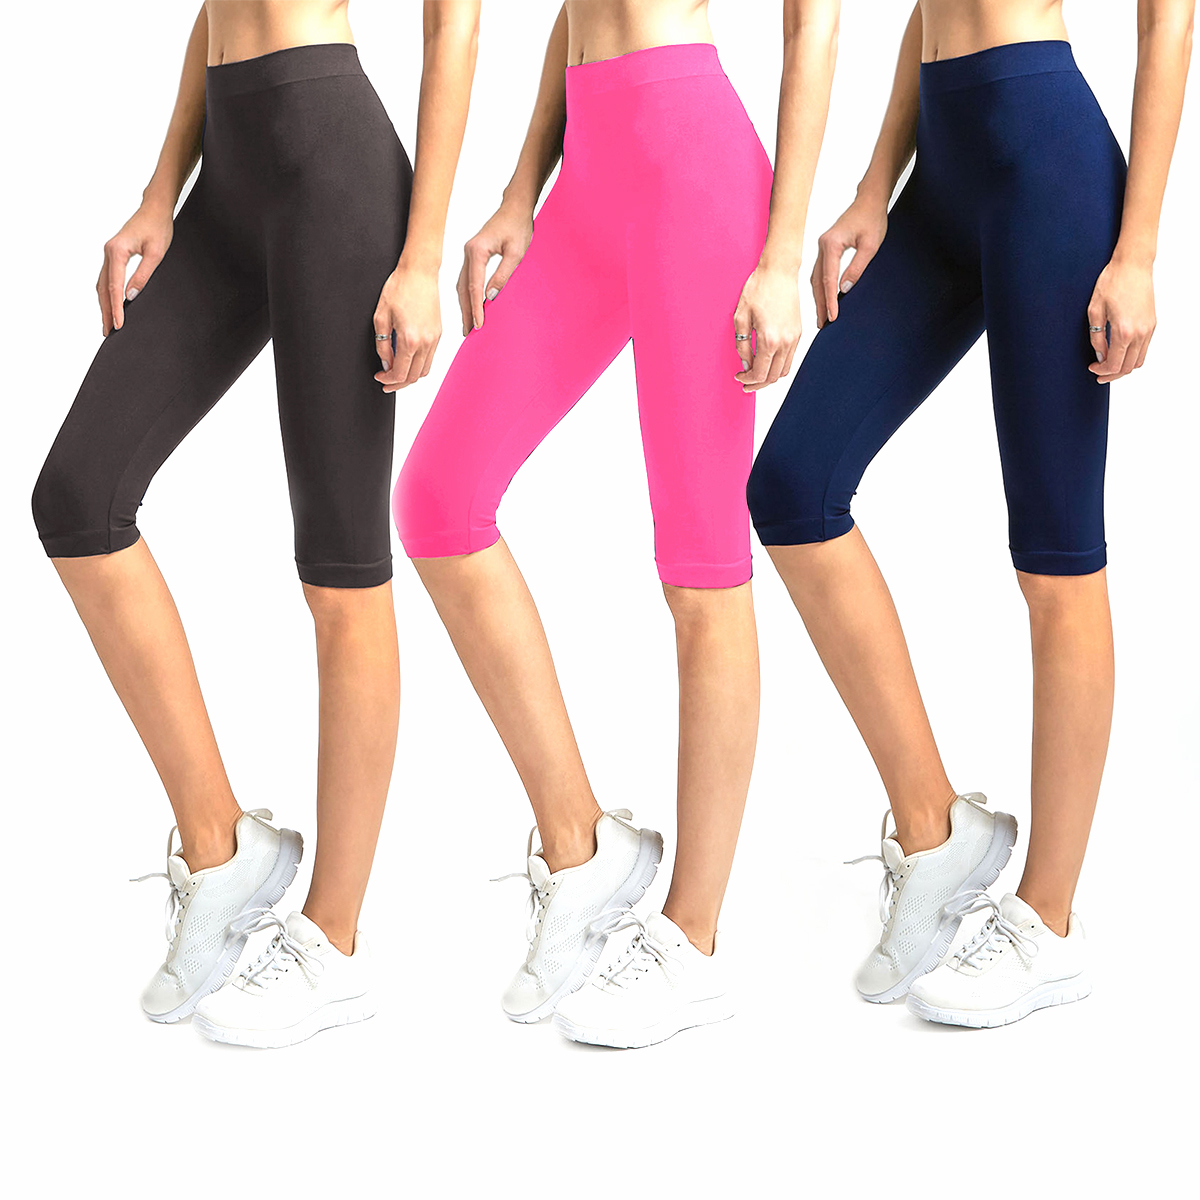 Solid Knee Length Short Spandex Yoga Leggings 3 Pack